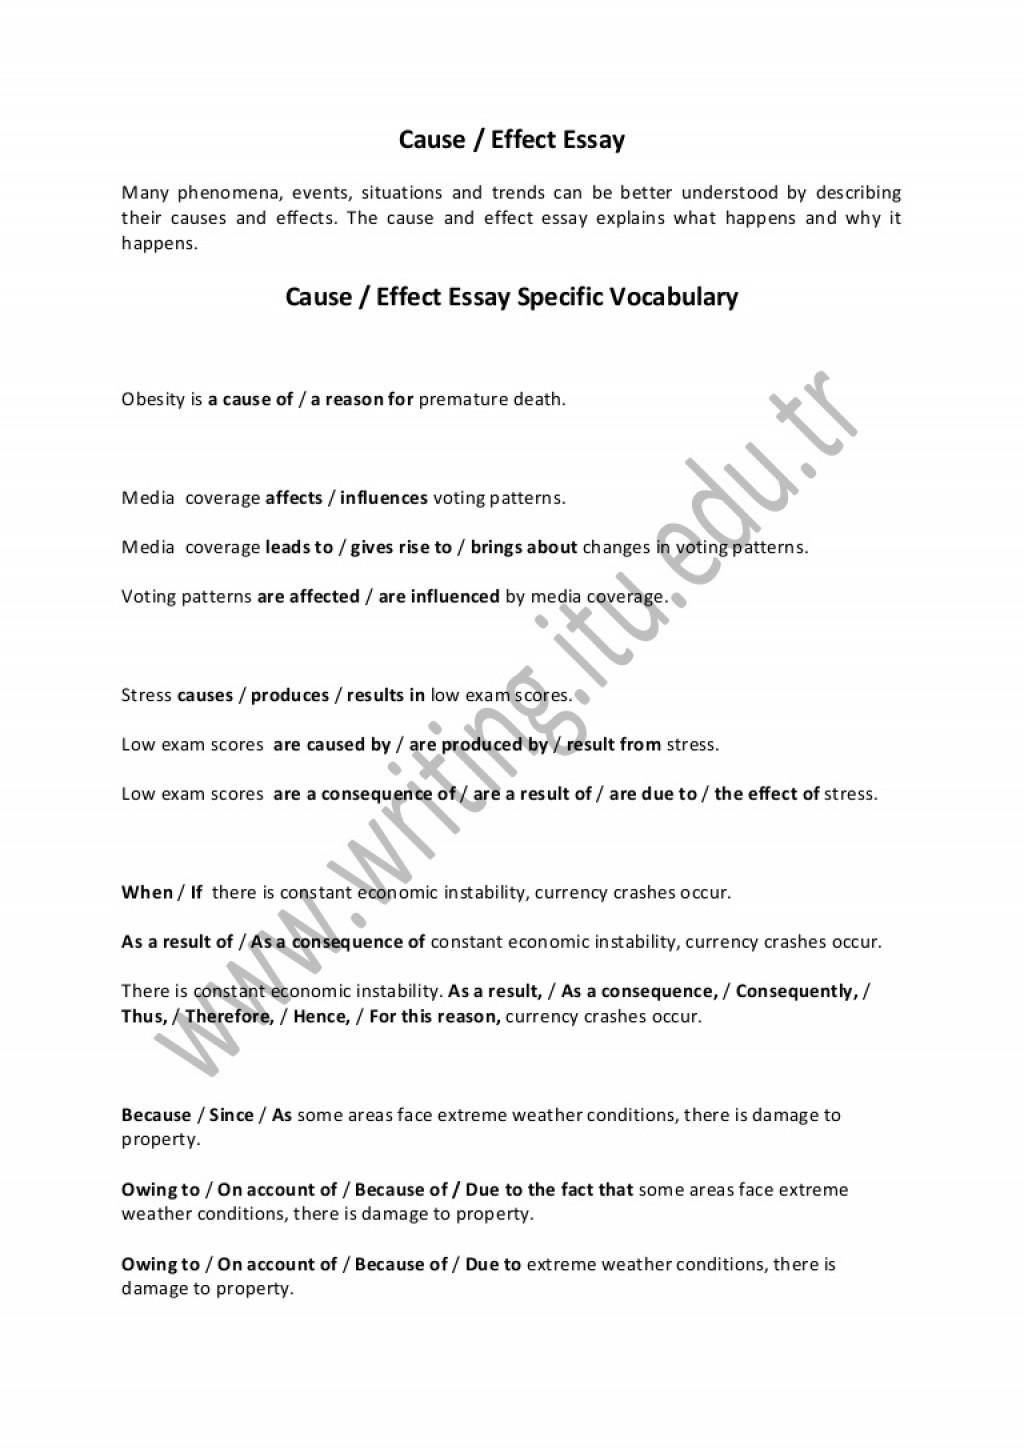 019 Essay Example Causeandeffectessay Thumbnail Cause And Effect Amazing Examples On Stress Pdf Large